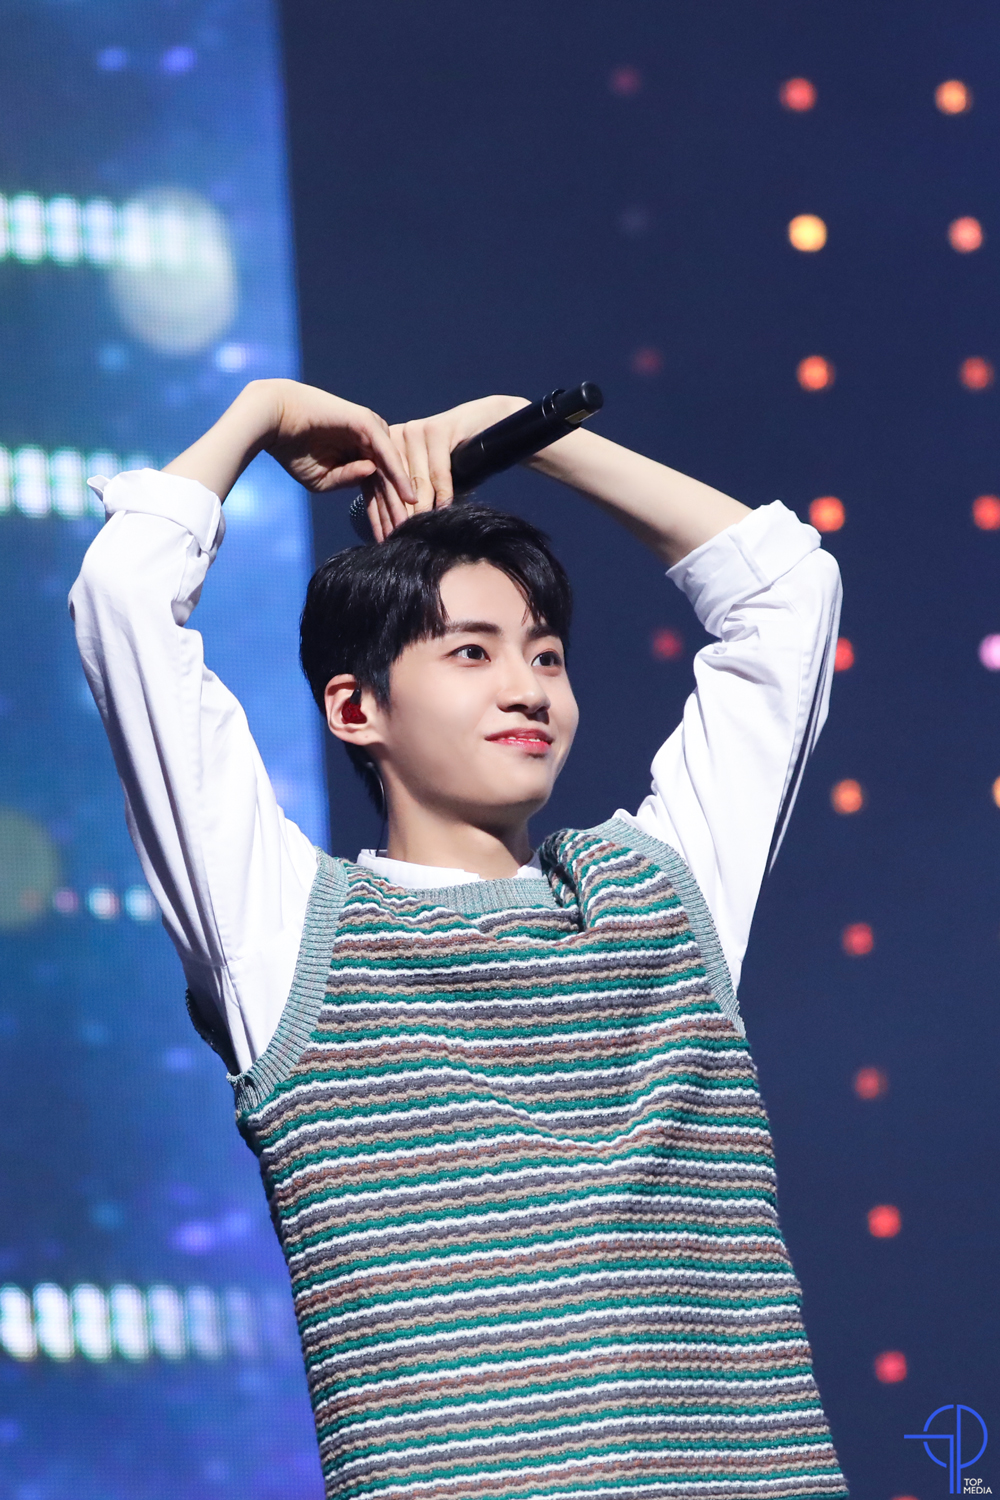 up10tion, up10tion profile, up10tion members, up10tion height, up10tion leader, up10tion facts, up10tion age, up10tion lee jinhyuk, lee jinhyuk fanmeeting, lee jinhyuk.